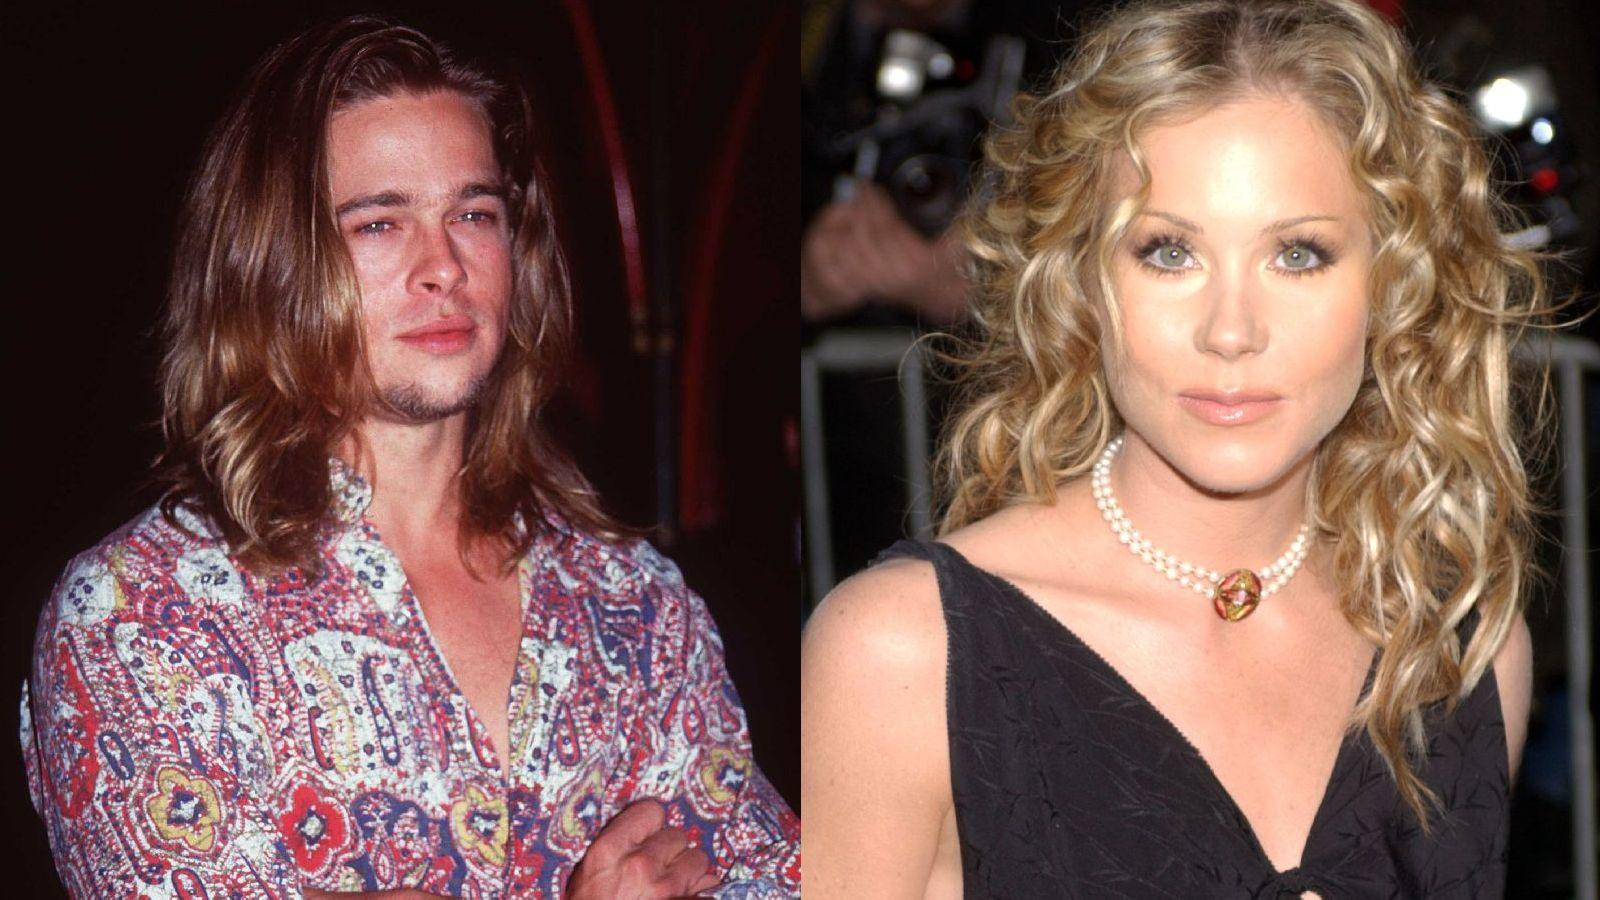 ...Christina Applegate is szöszi volt. (Getty Images)